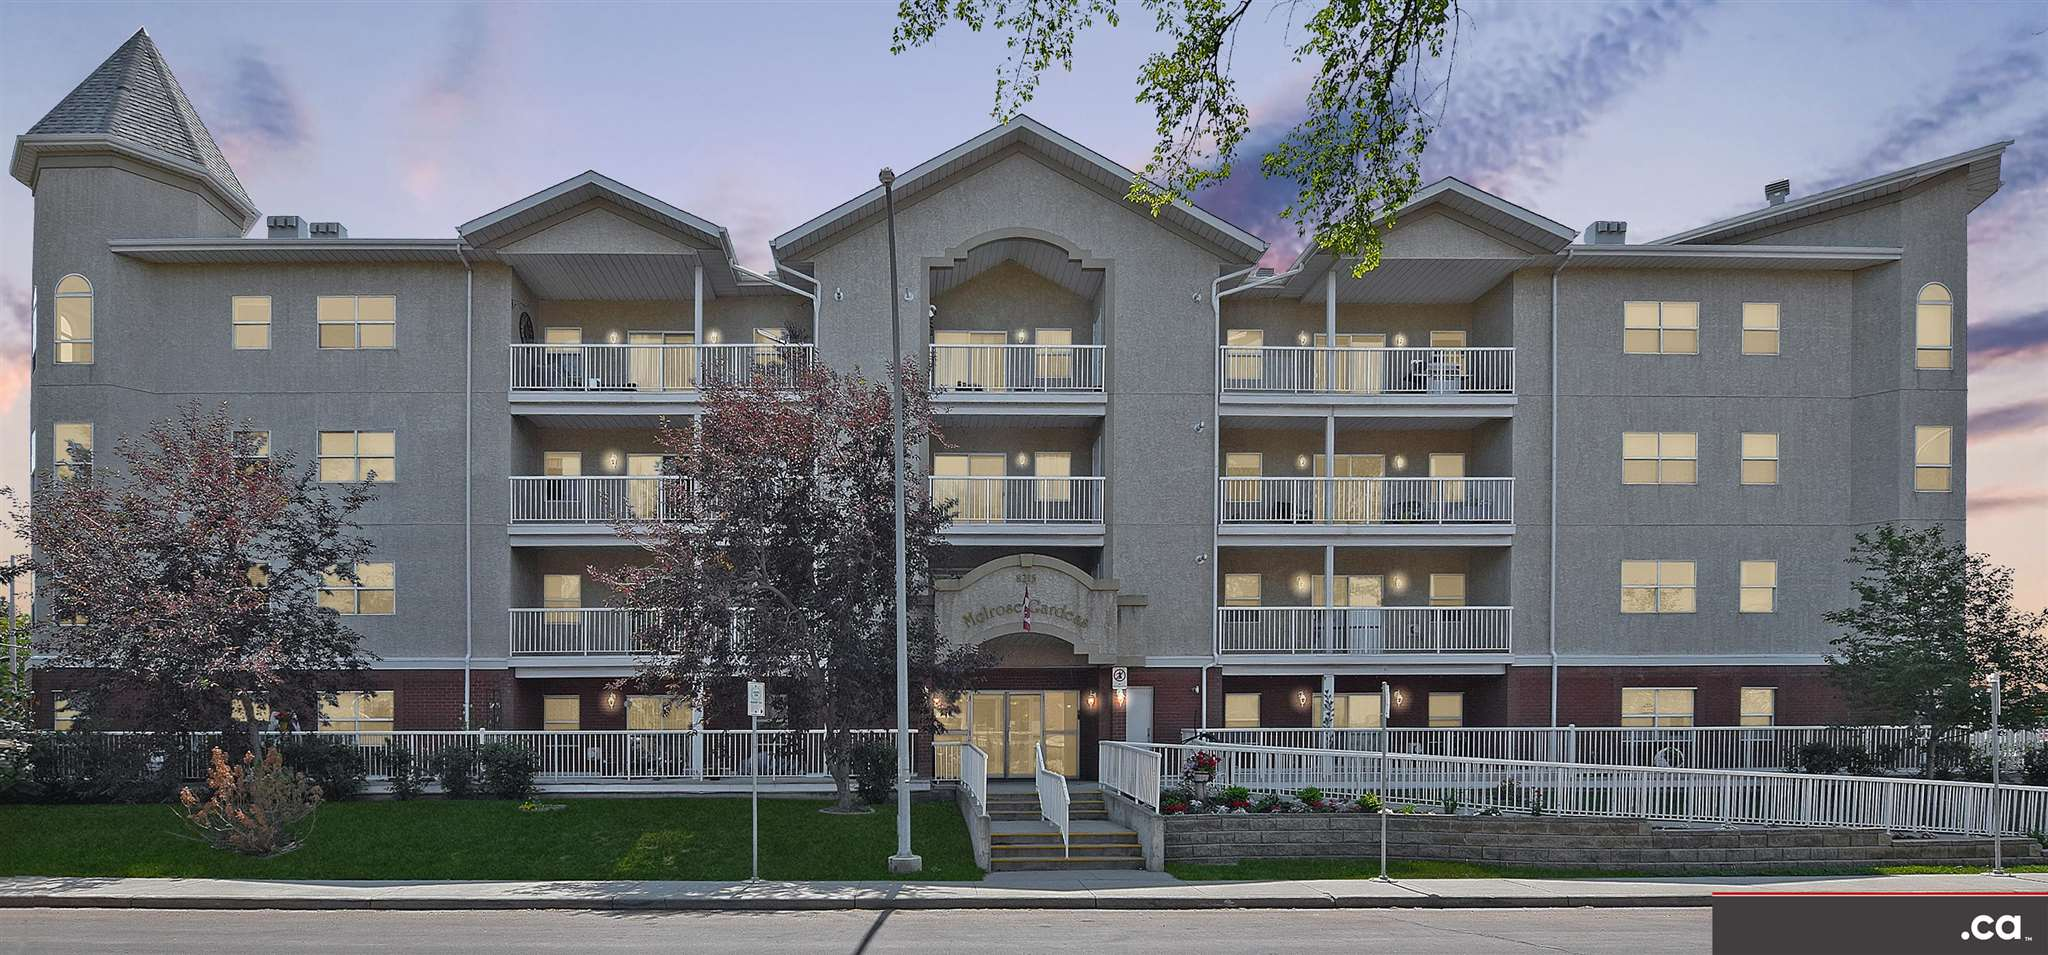 * ATTENTION SENIOR (AGE 50+) BUYERS: WONDERFUL CONDITION & FRESHLY PAINTED TWO-BEDROOM CONDO ACROSS FROM BONNIE DOON SAFEWAY AND FUTURE LRT!! Nice second floor layout includes separate kitchen and dining areas; living room with private balcony access; two bedrooms (with option to use one as an office or den); full bath with tub and shower; and in-suite laundry with new washer. Melrose Gardens Condominium features a large social room with kitchenette; lobby waiting area with couches; underground parking, storage, and car wash; Canada Post outgoing mail / parcel box; secure entry door; fire sprinkler system; nice front landscaping; and wheelchair accessible ramp. Convenient access to shopping; banking; medical / dental / optometry; barber / hairdresser; library; and recreation (bowling, swimming). Immediate possession!!